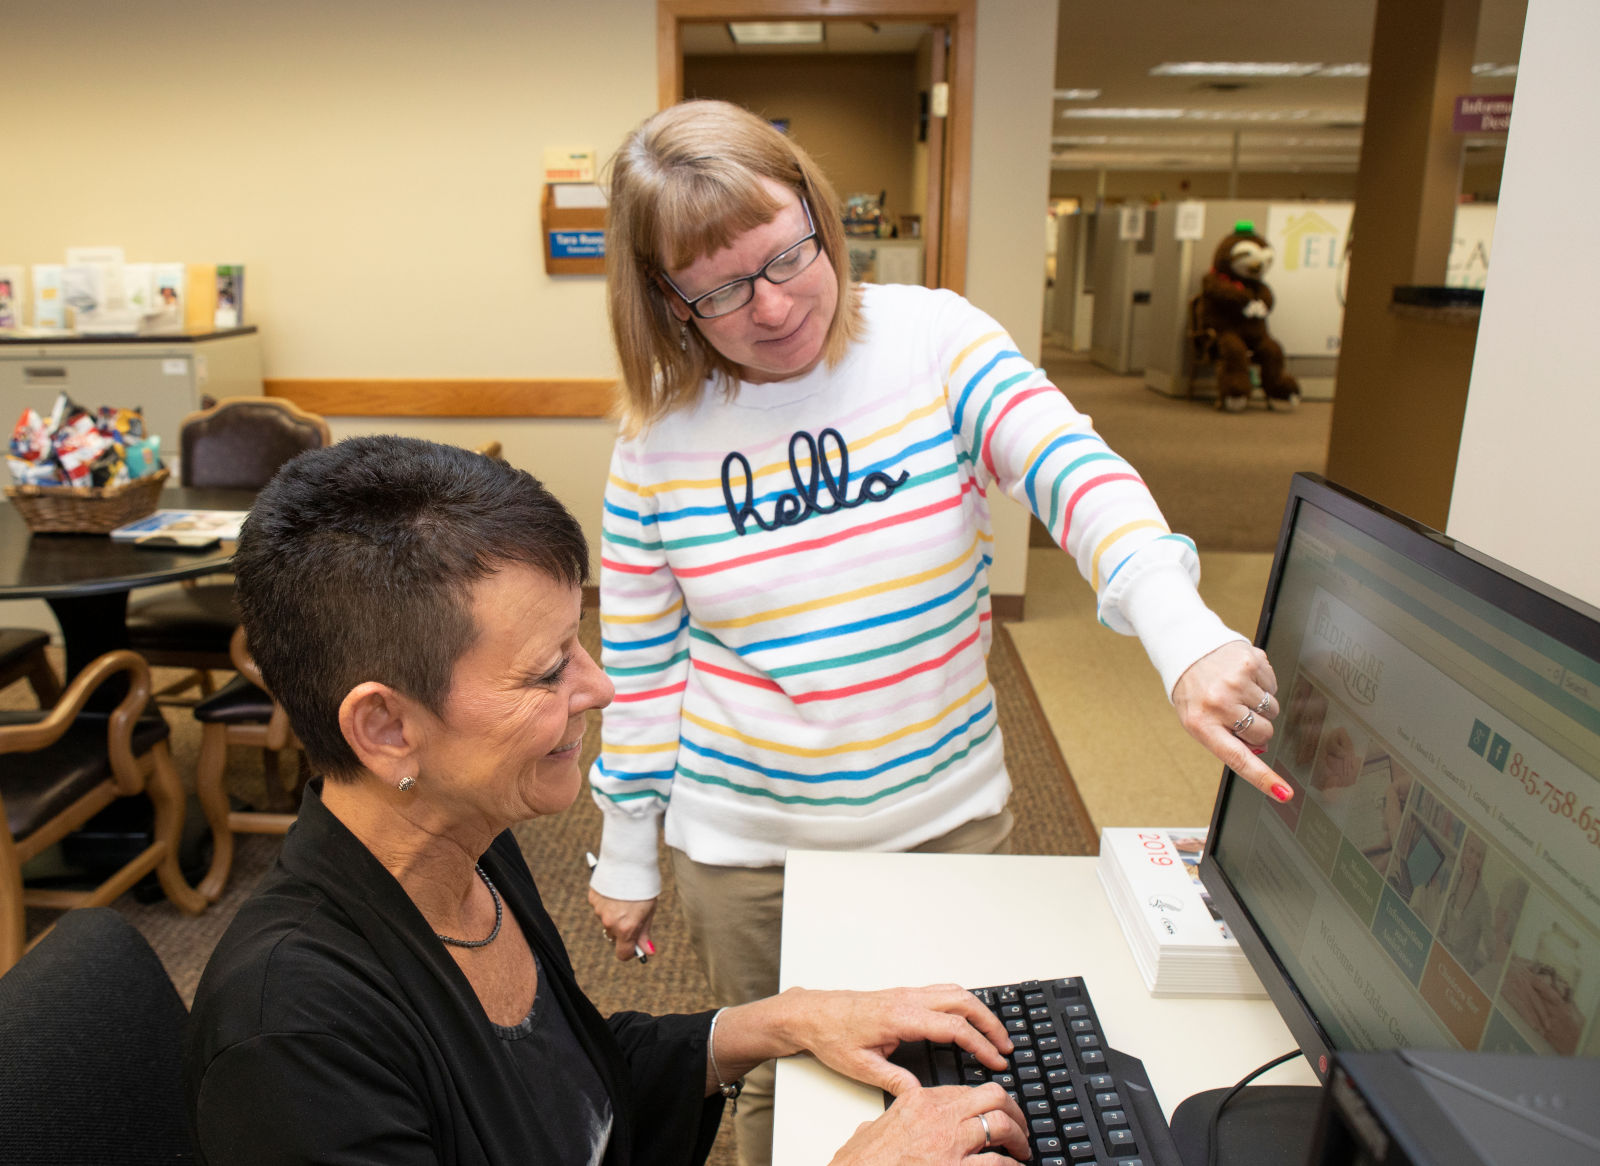 Elder Care Services employees working together at a computer